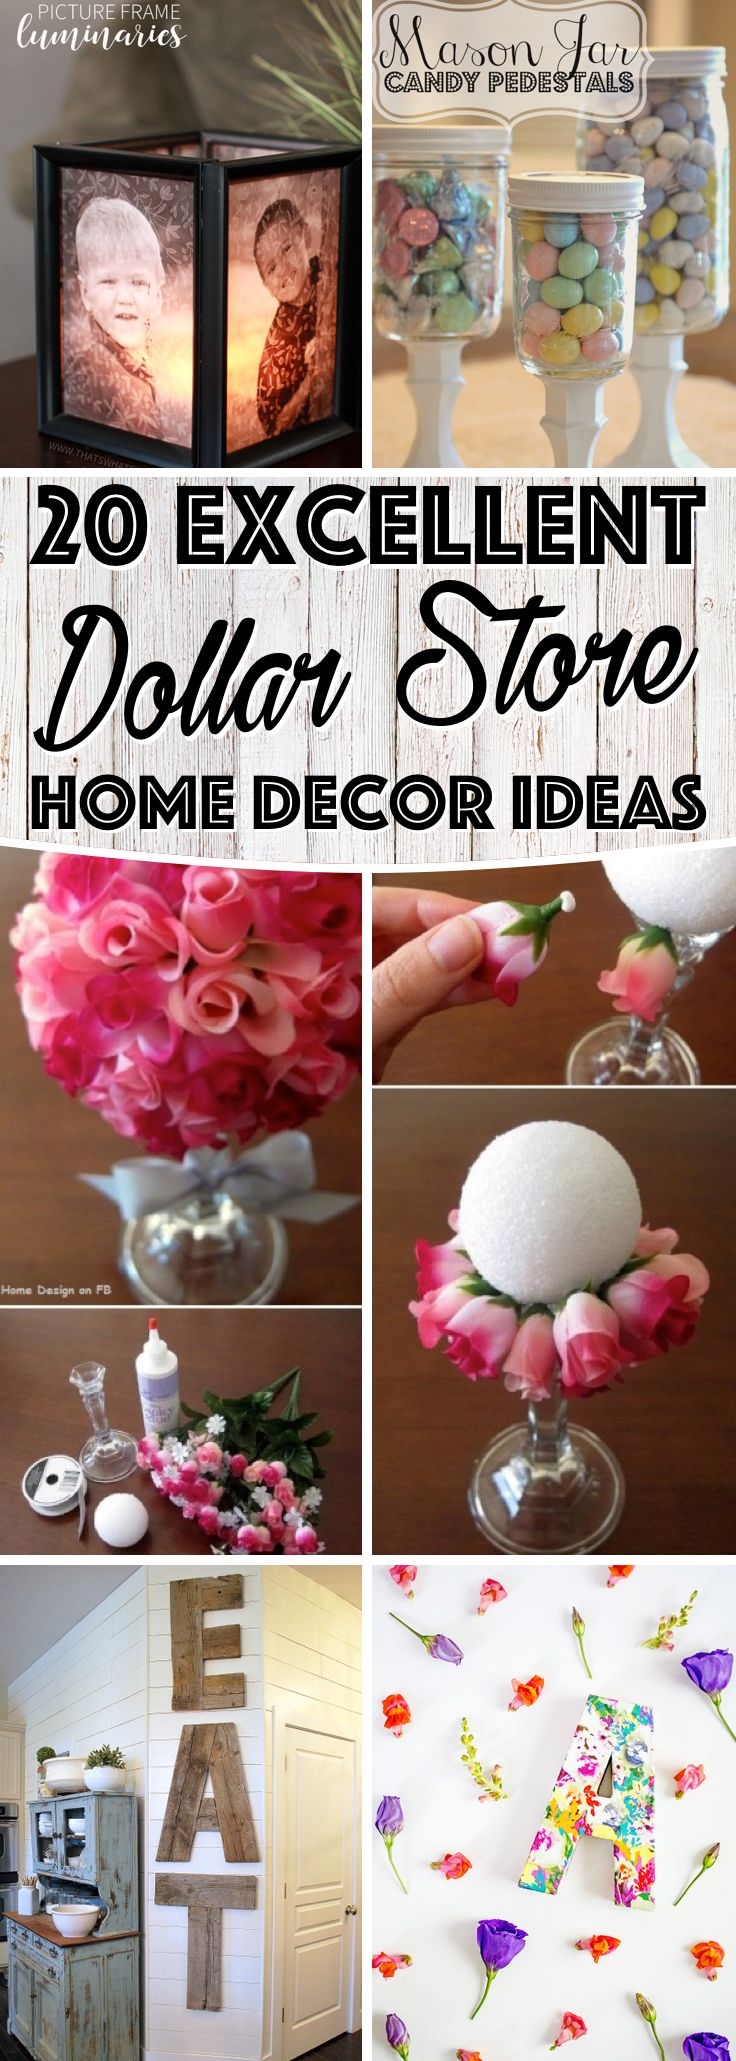 20 Excellent Dollar Store Home Decor Ideas to Enhance the Beauty of ...